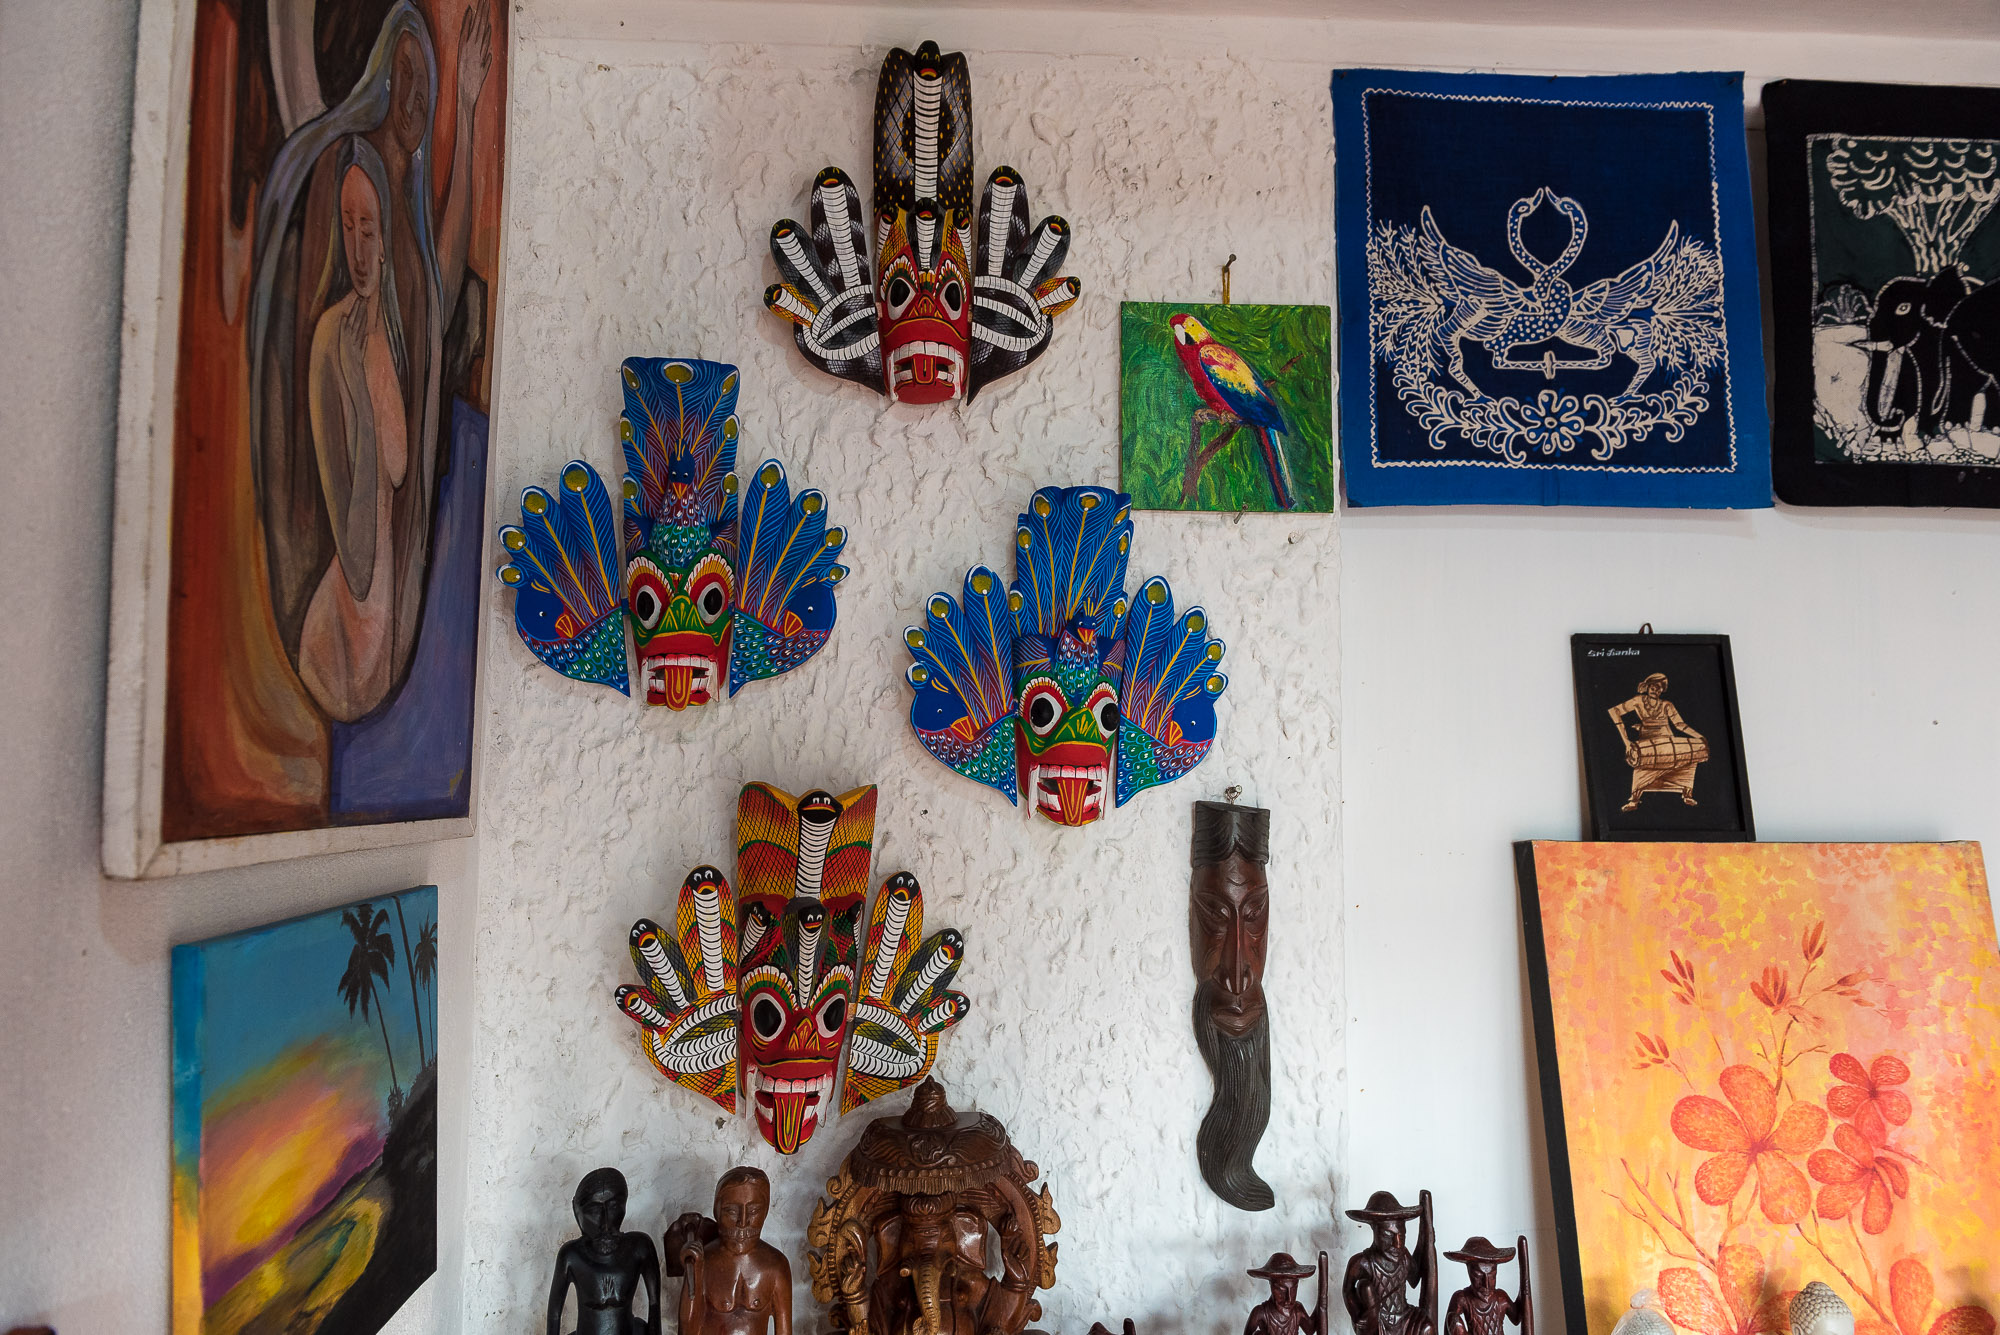 Sri Lankan masks